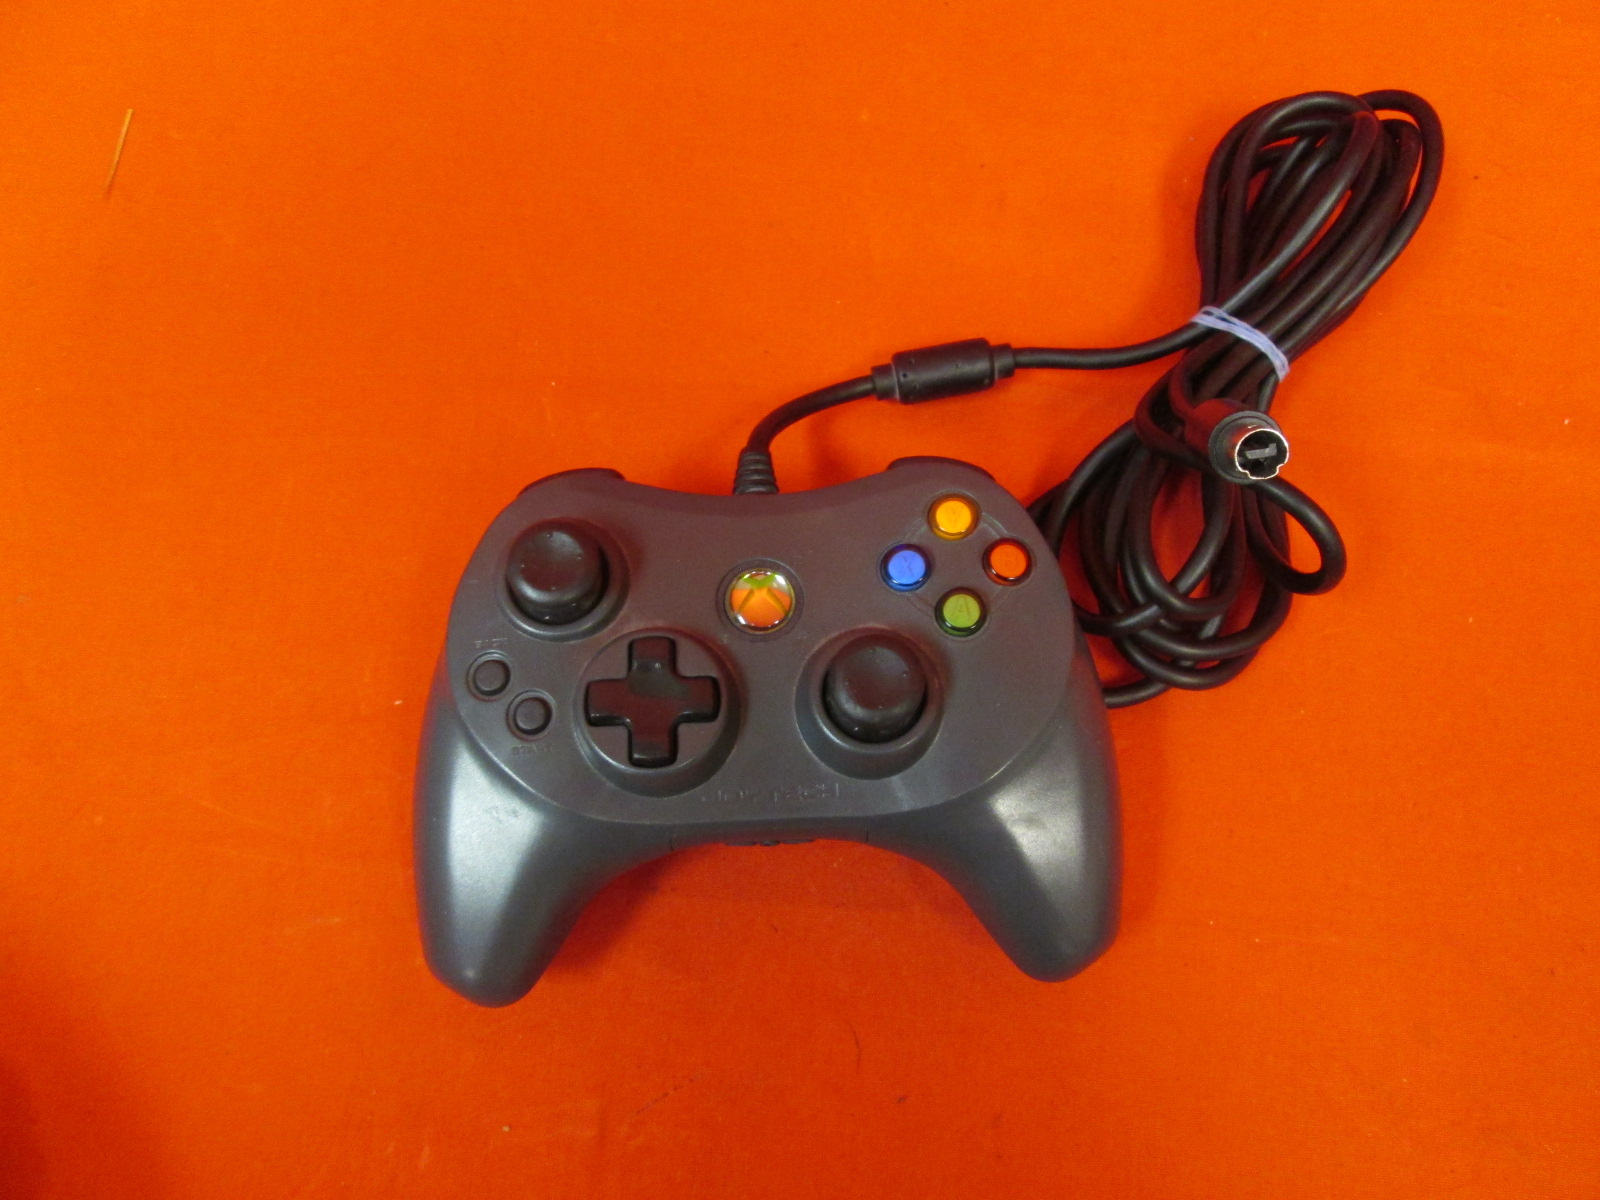 JS110M Neo SE Advanced Wired Black Video Game Controller For Xbox 360